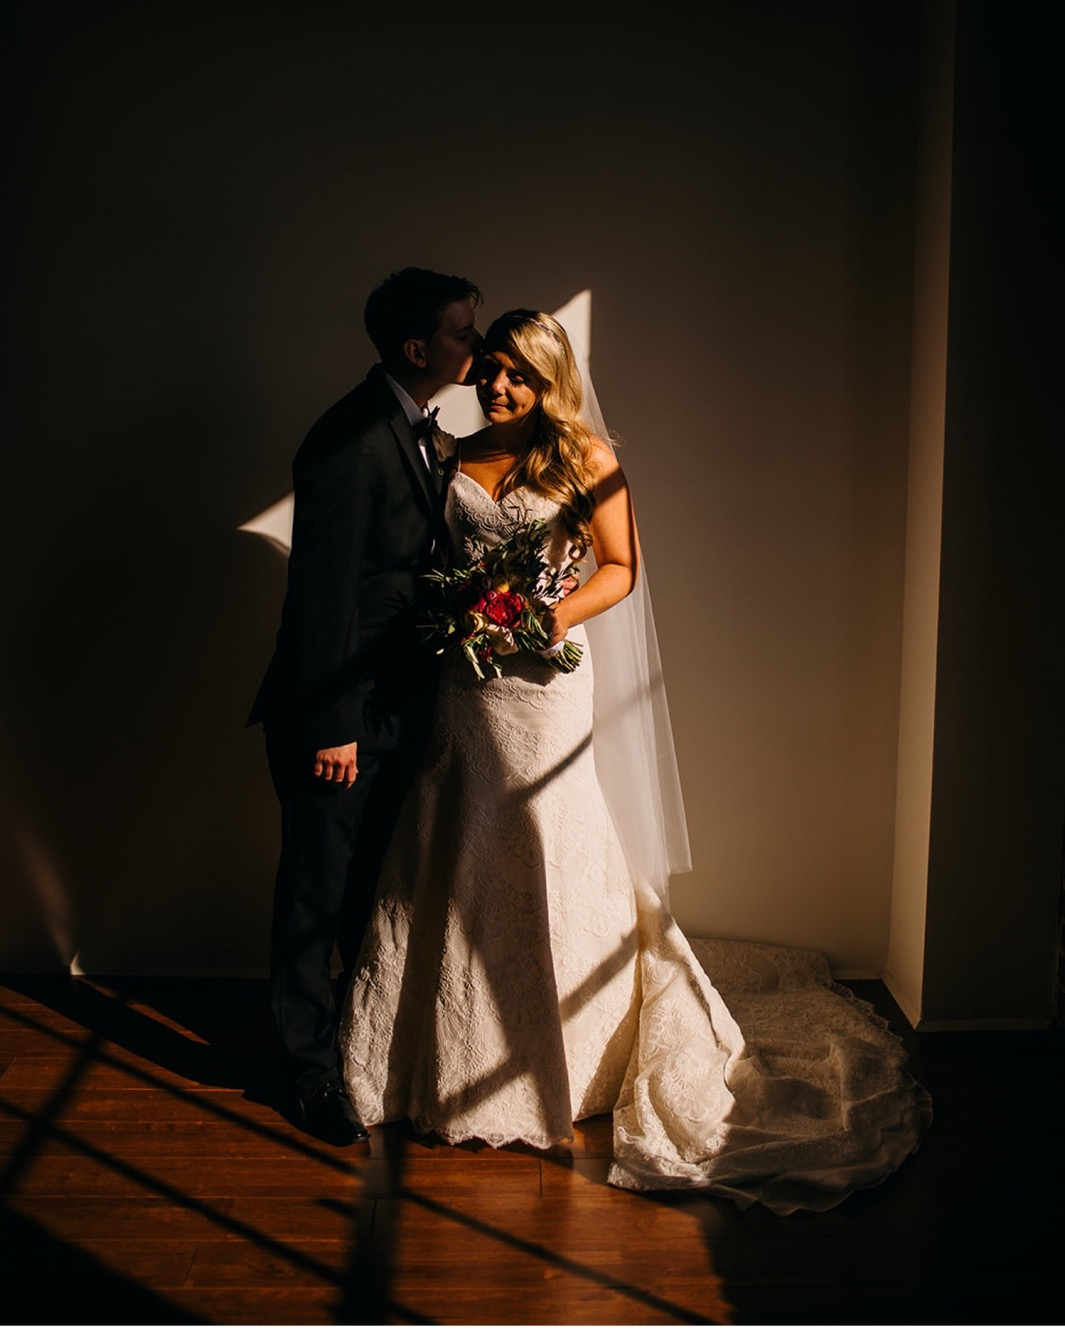 Groom kisses the brides cheek at their wedding at the Turnbull building.